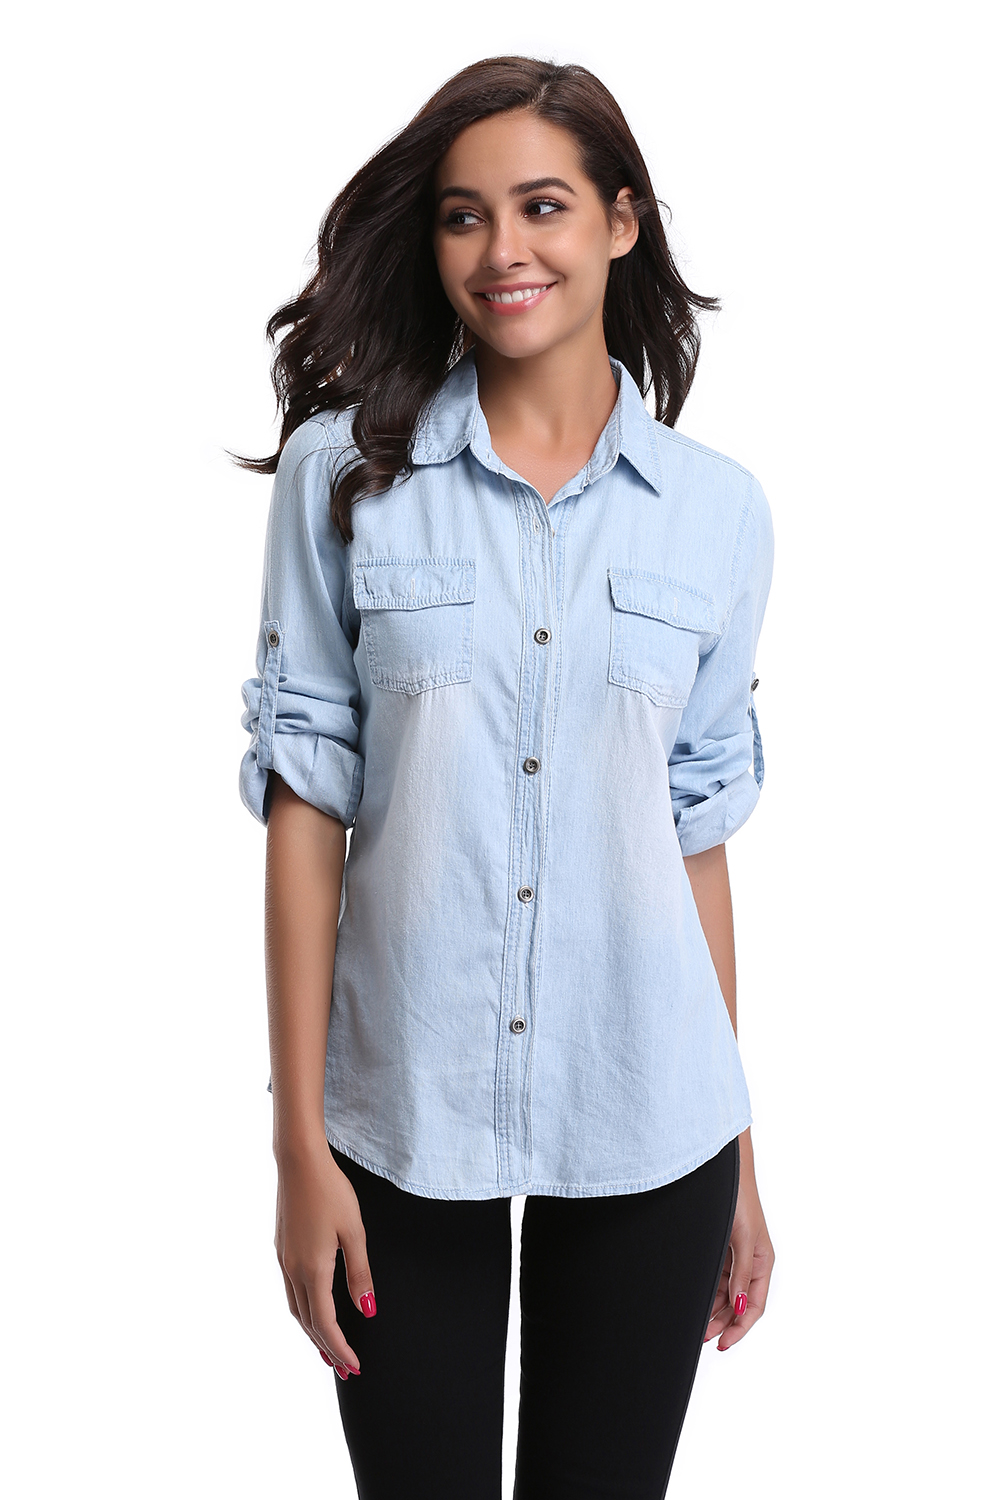 Best sale womens chambray shirt top denim shirts and for Chambray shirt women